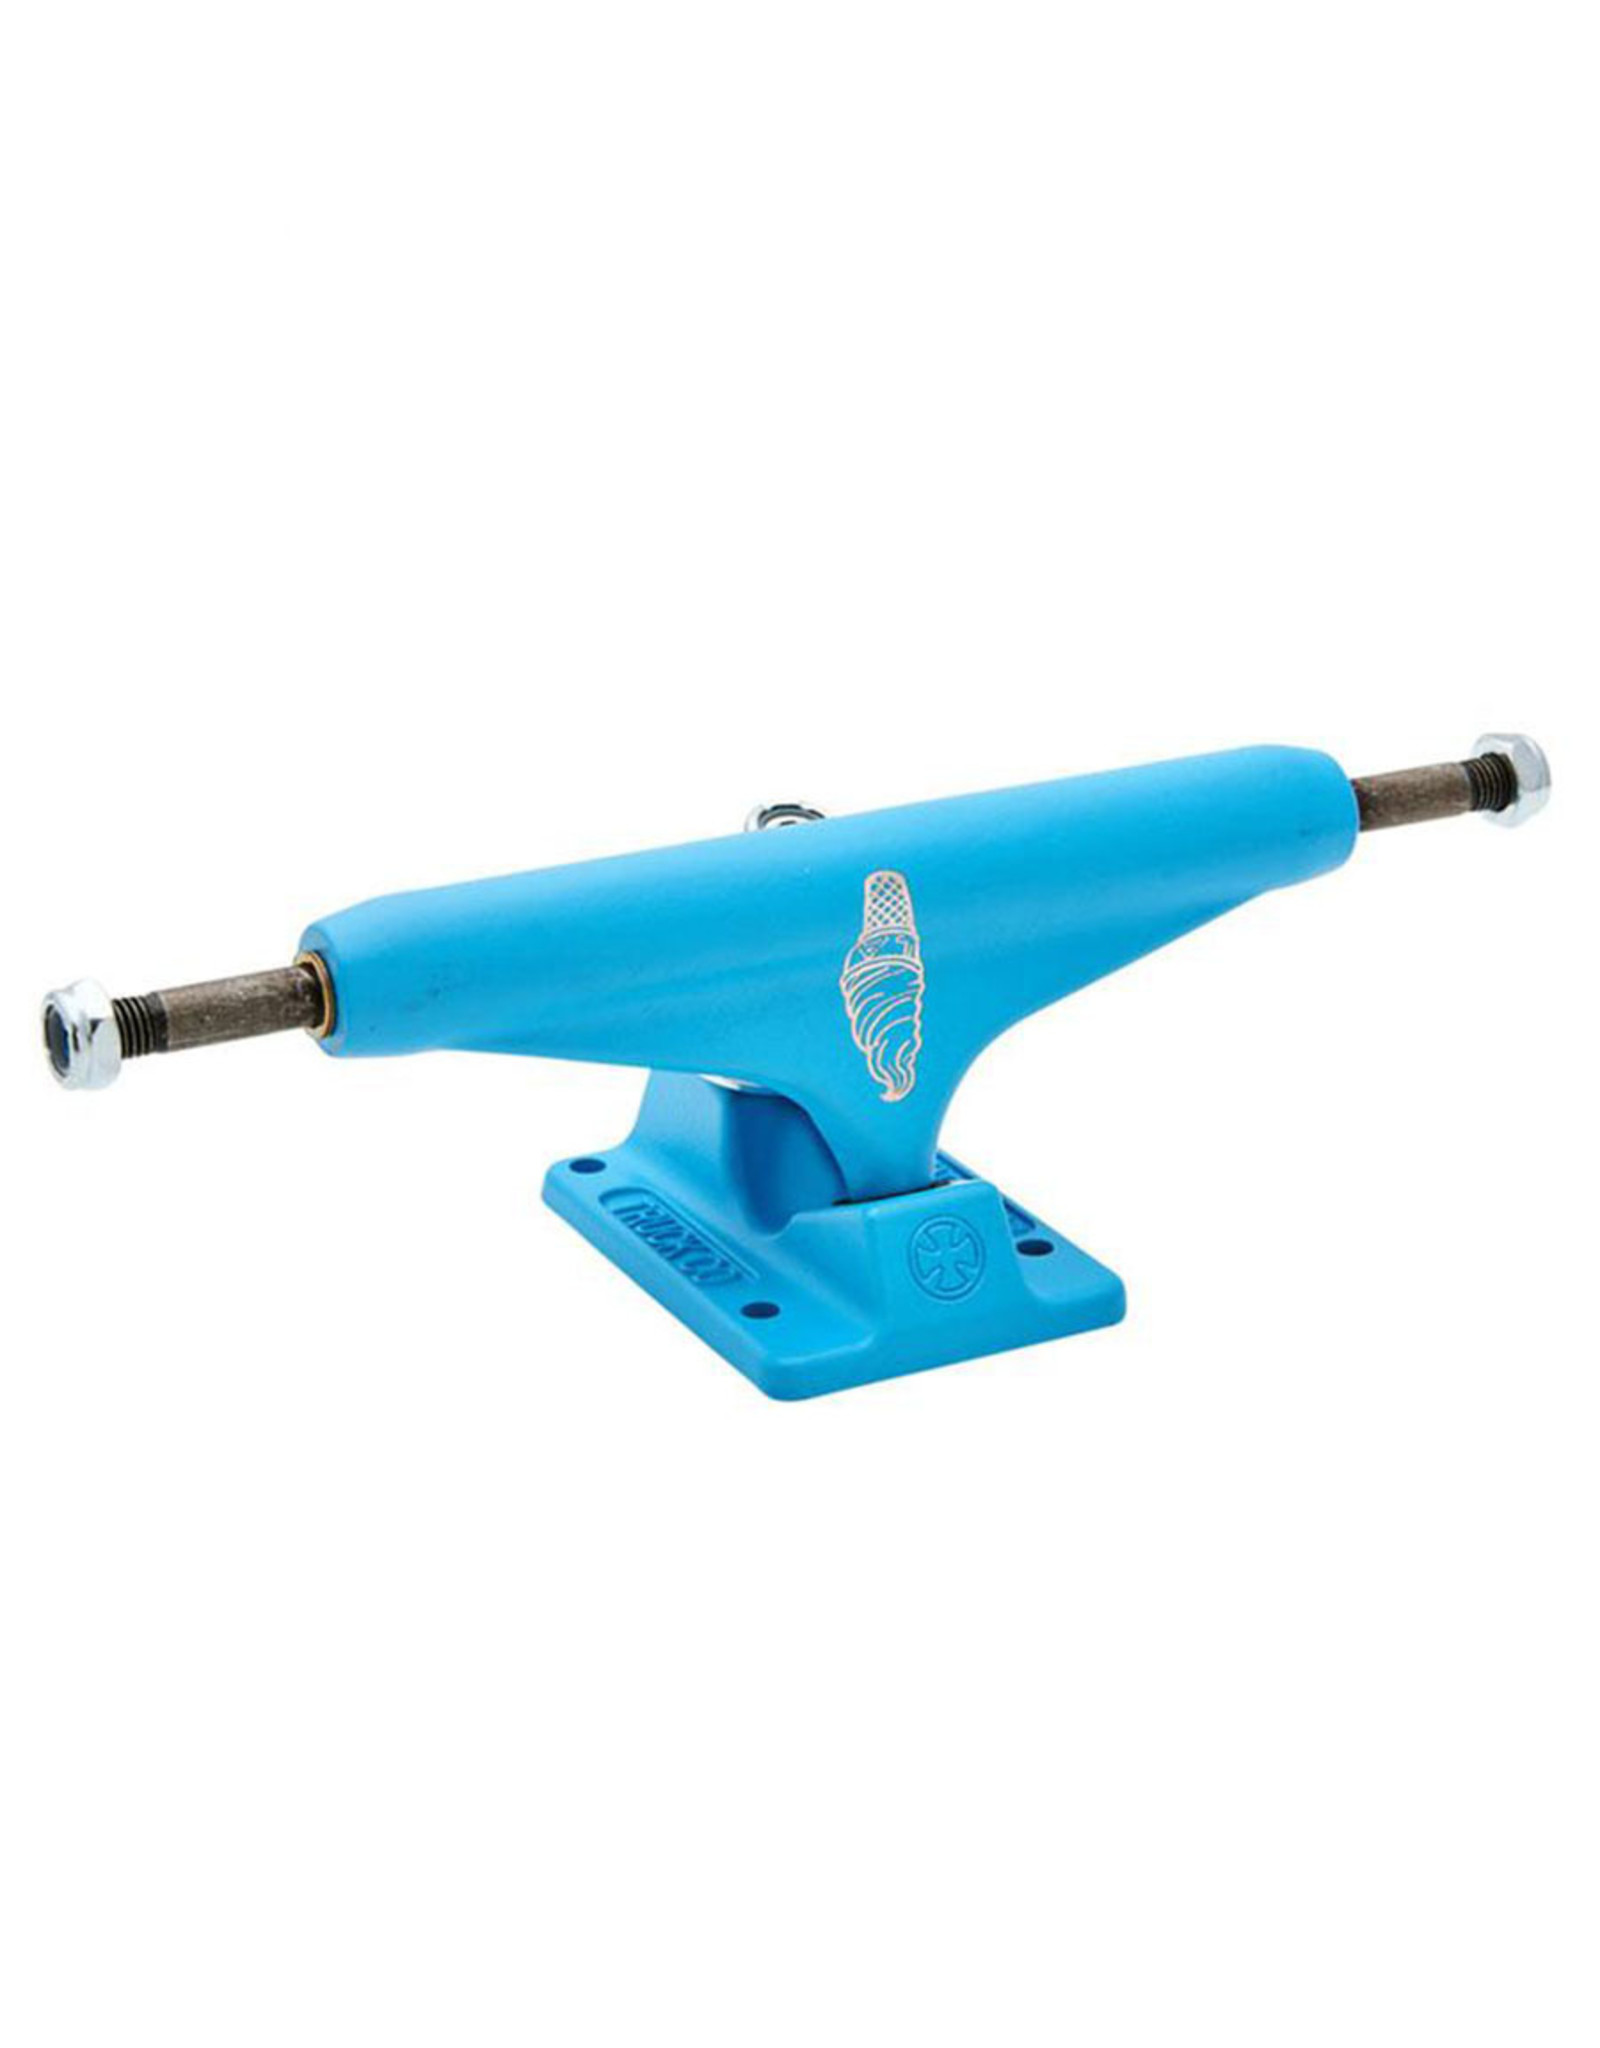 Independent Independent Trucks 139 Stage 11 Lizzie Armanto Hollow Light Blue (Sold in Pair)